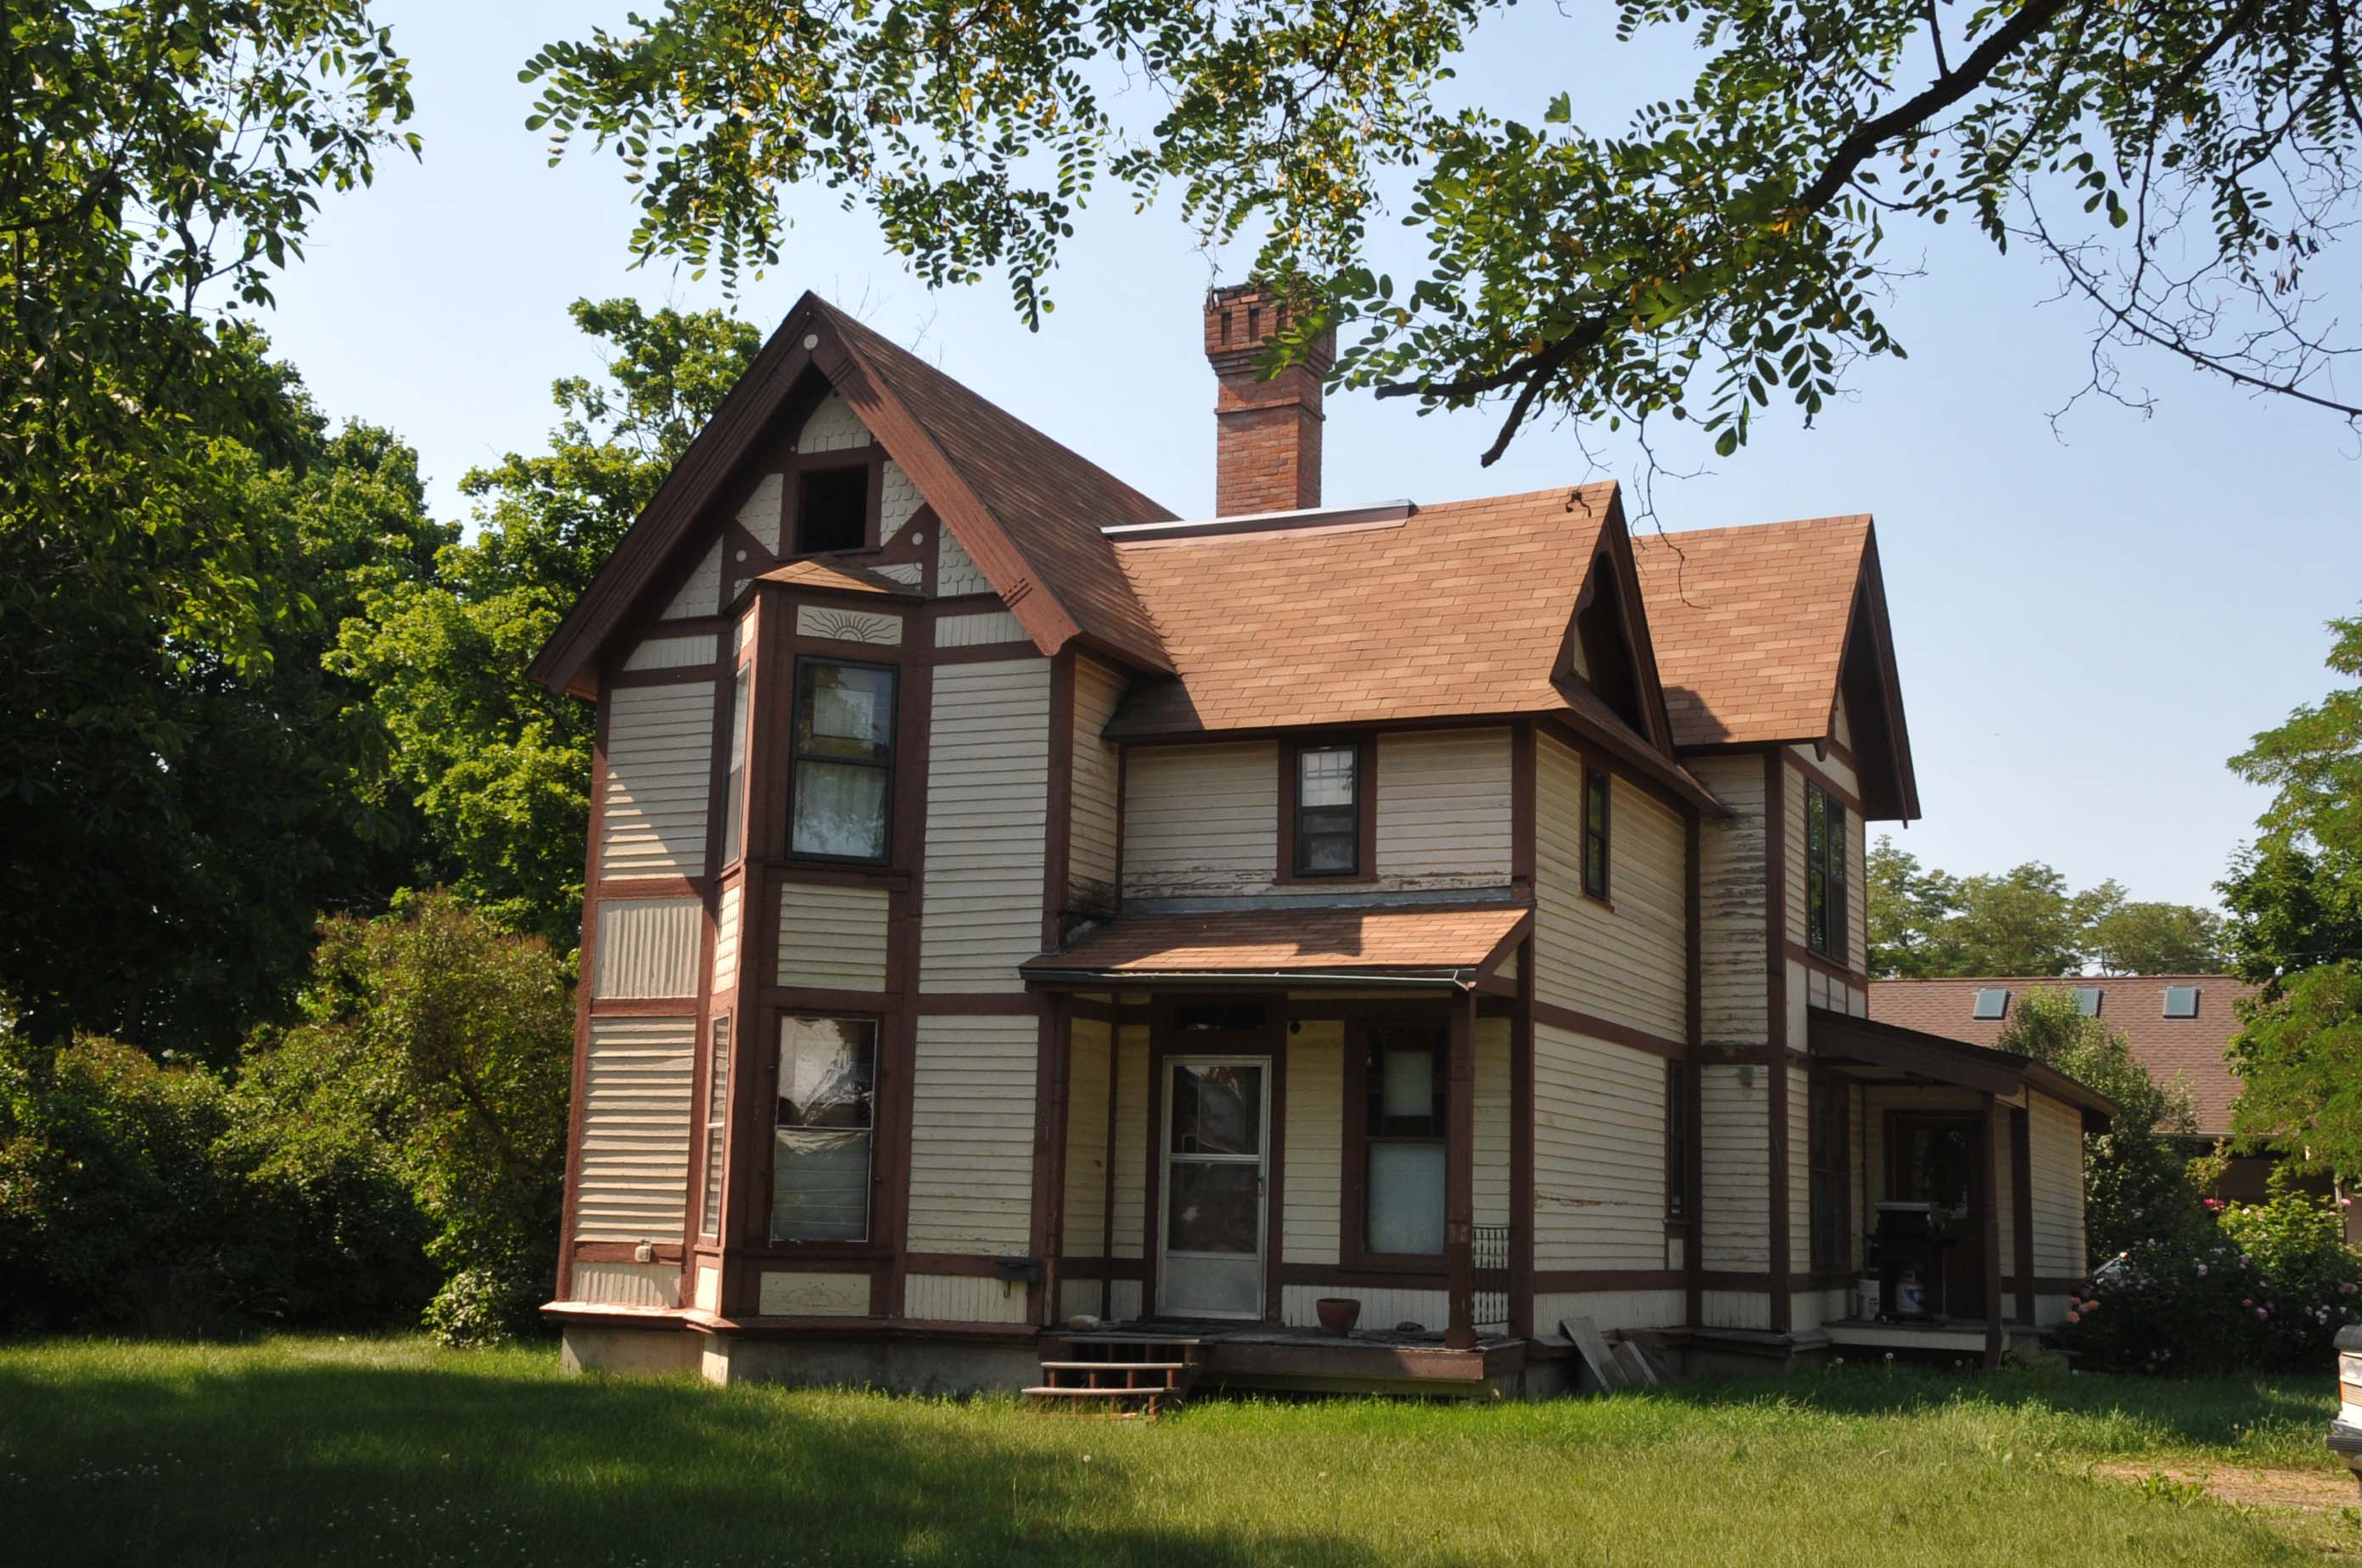 File:FISHER HOUSE, KALISPELL, FLATHEAD COUNTY